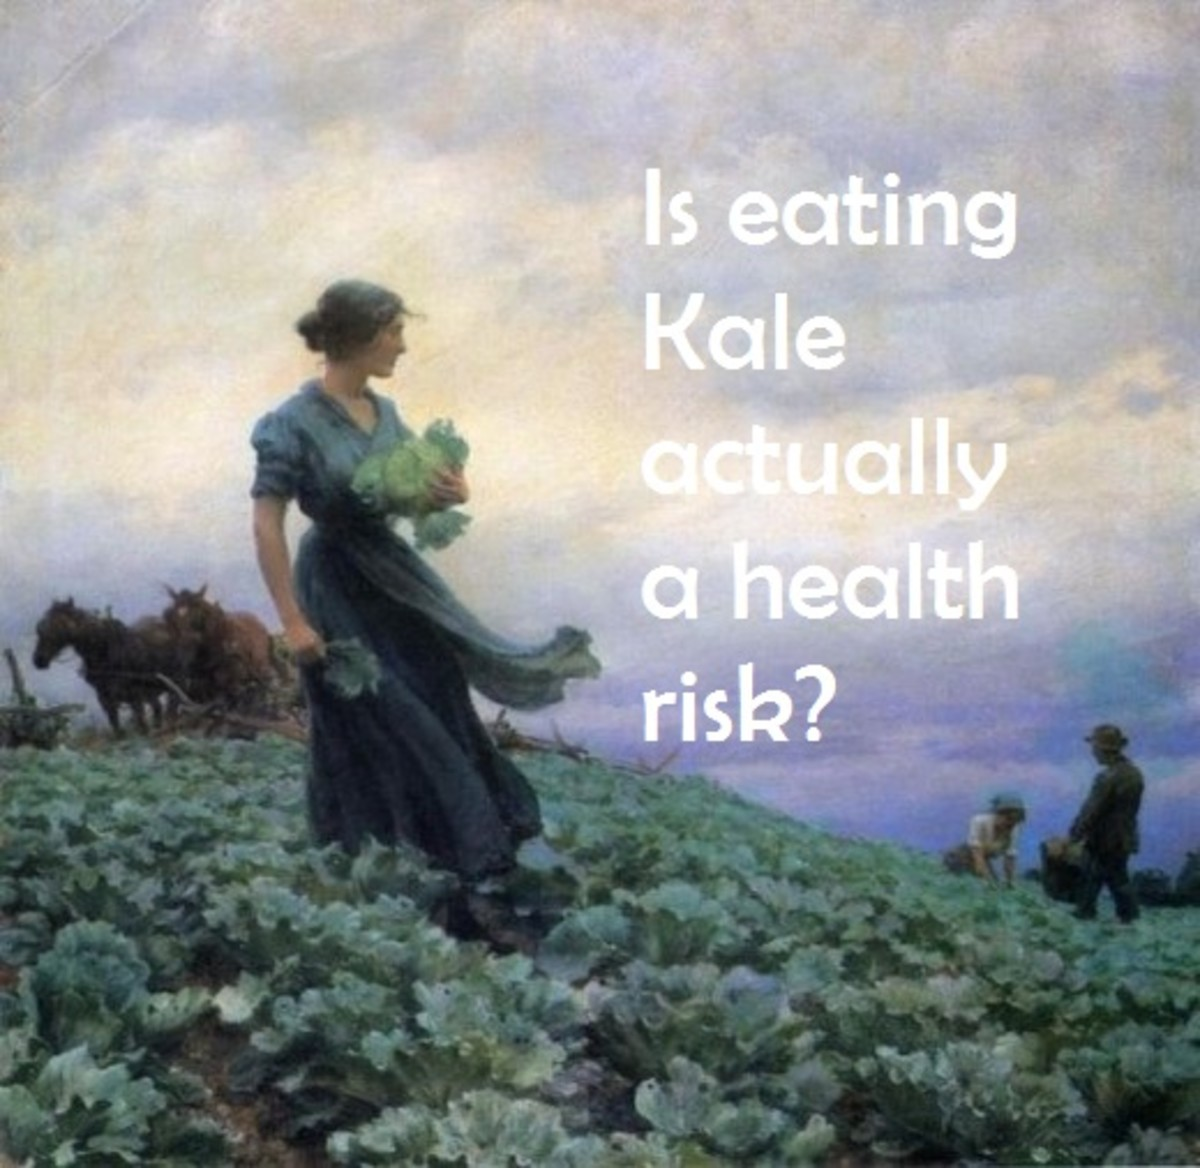 Kale: History, Benefits, and Risks